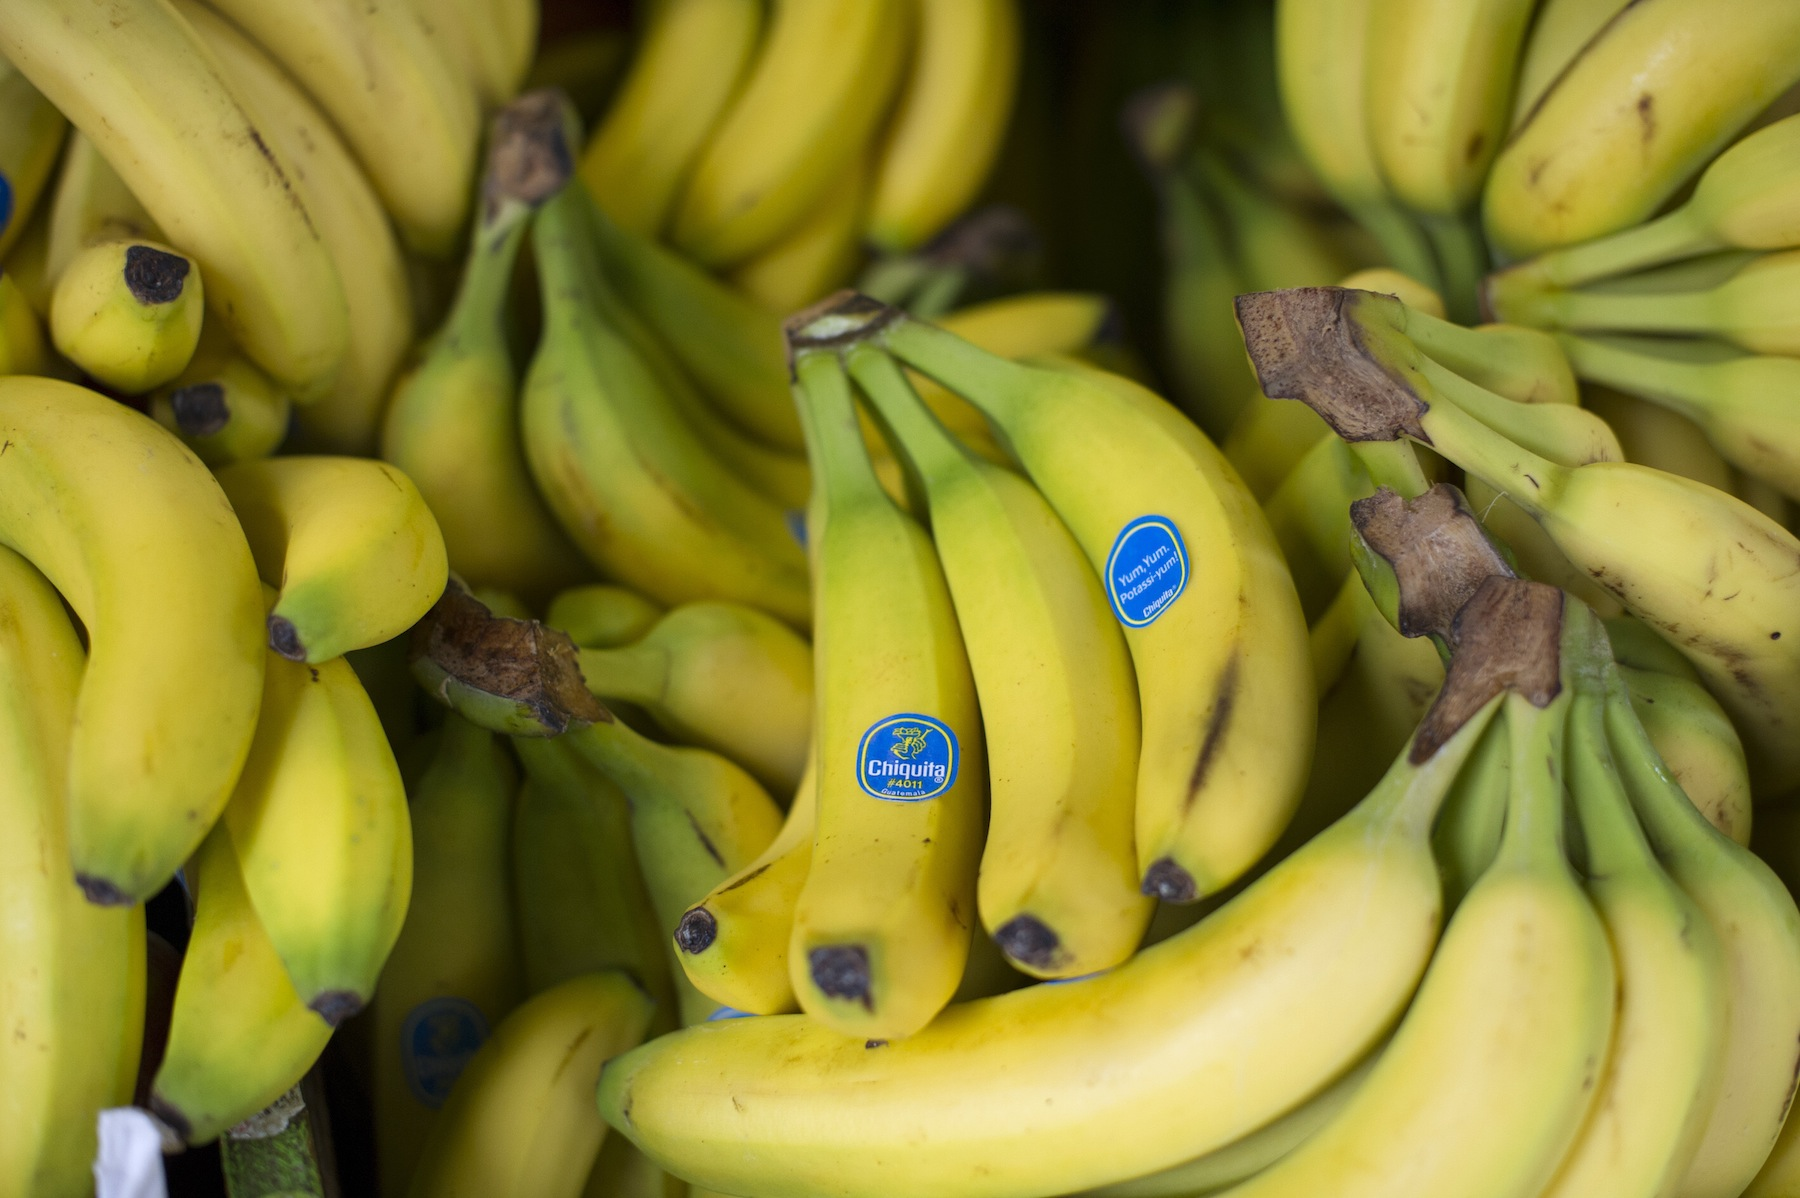 Chiquita Brands International Inc. bananas are displayed at a store in San Francisco on Feb. 19, 2013.